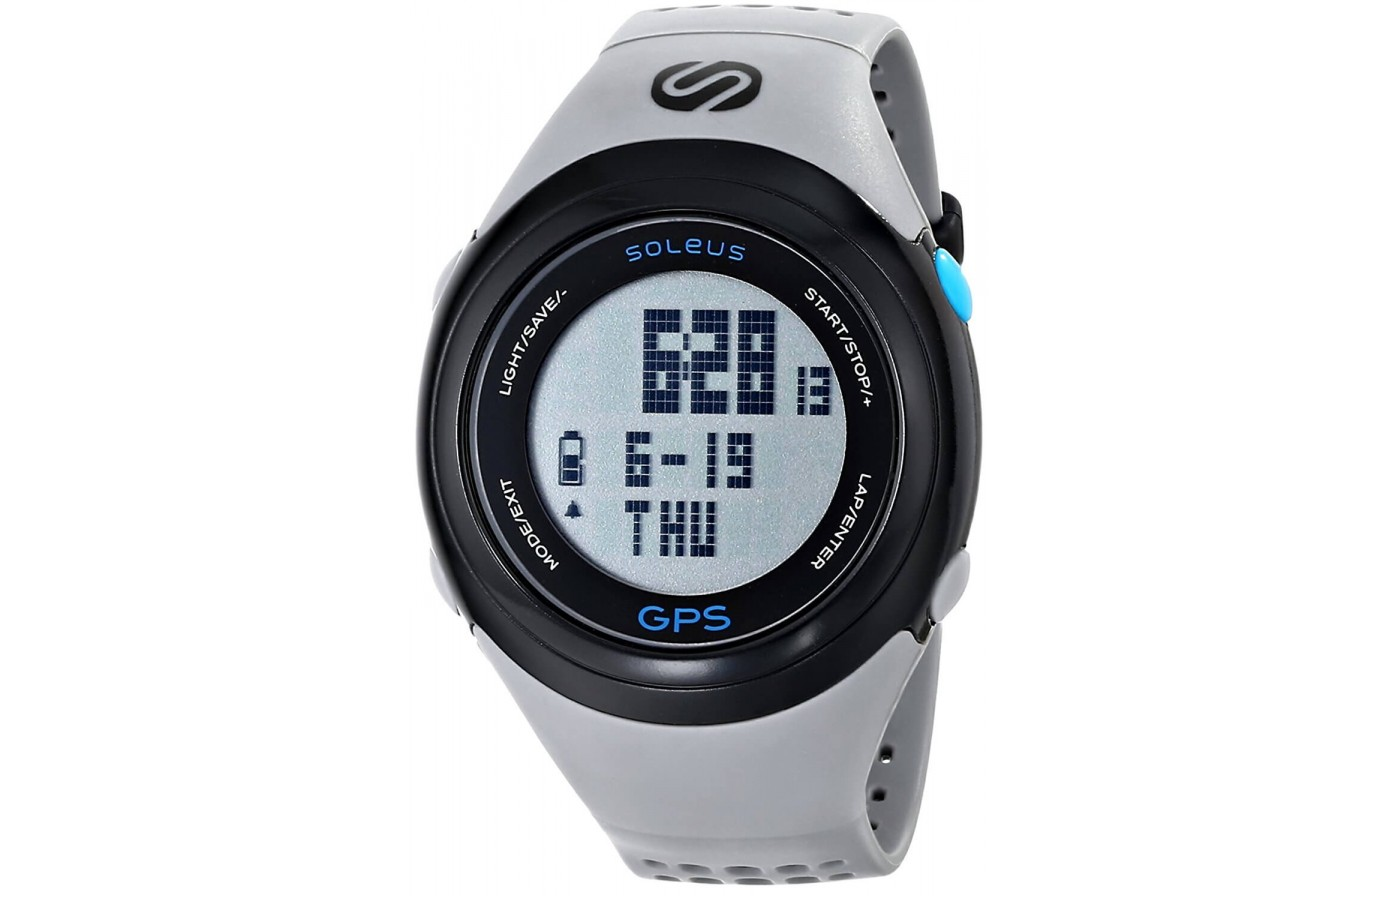 The Soleus GPS Fit 1.0 features a stopwatch function